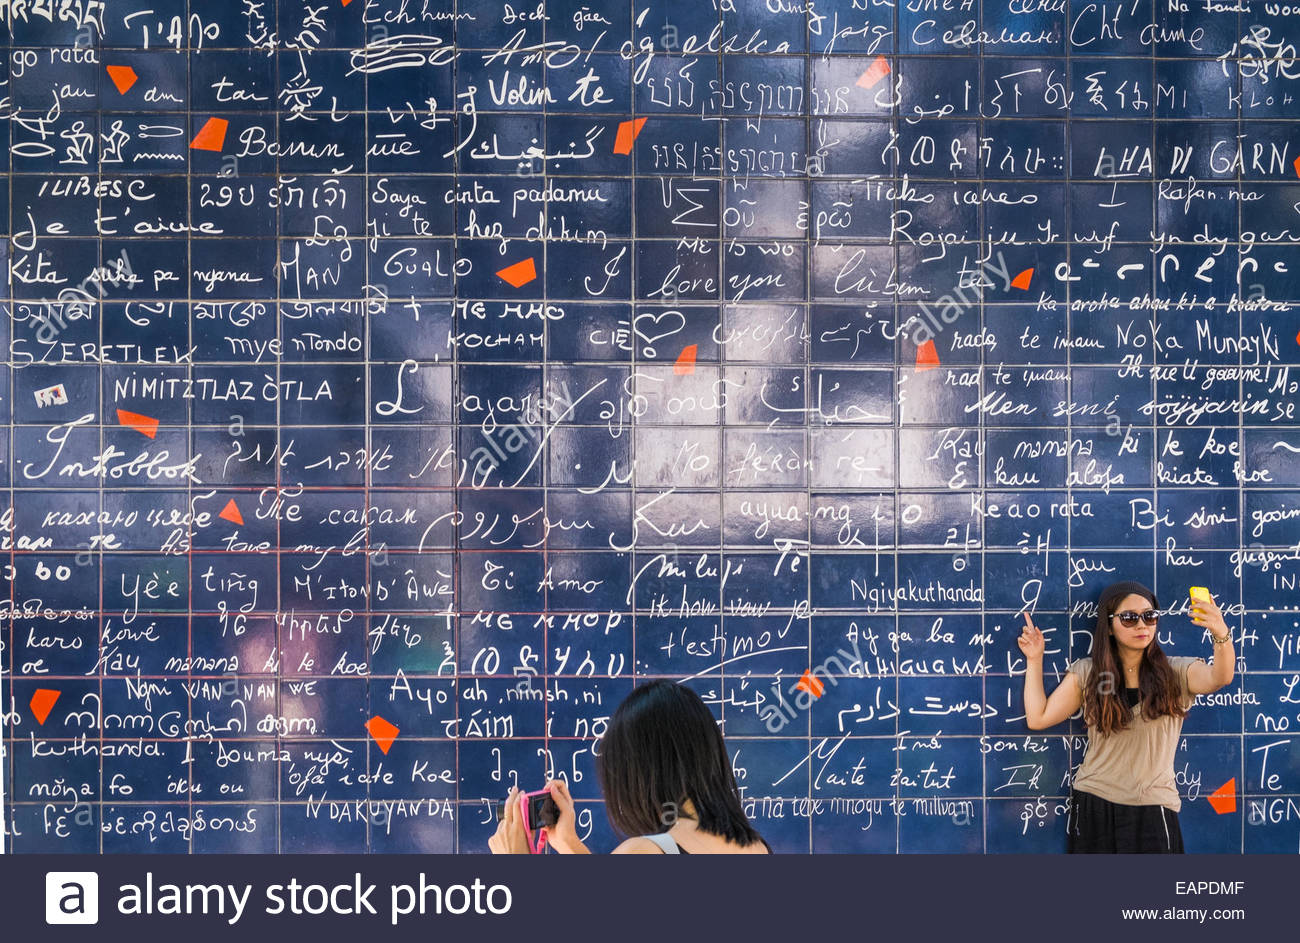 asian tourists in front of the so-called i-love-you-wall, buttes montmartre, place des abbesses, square jehan rictus, - Stock Image